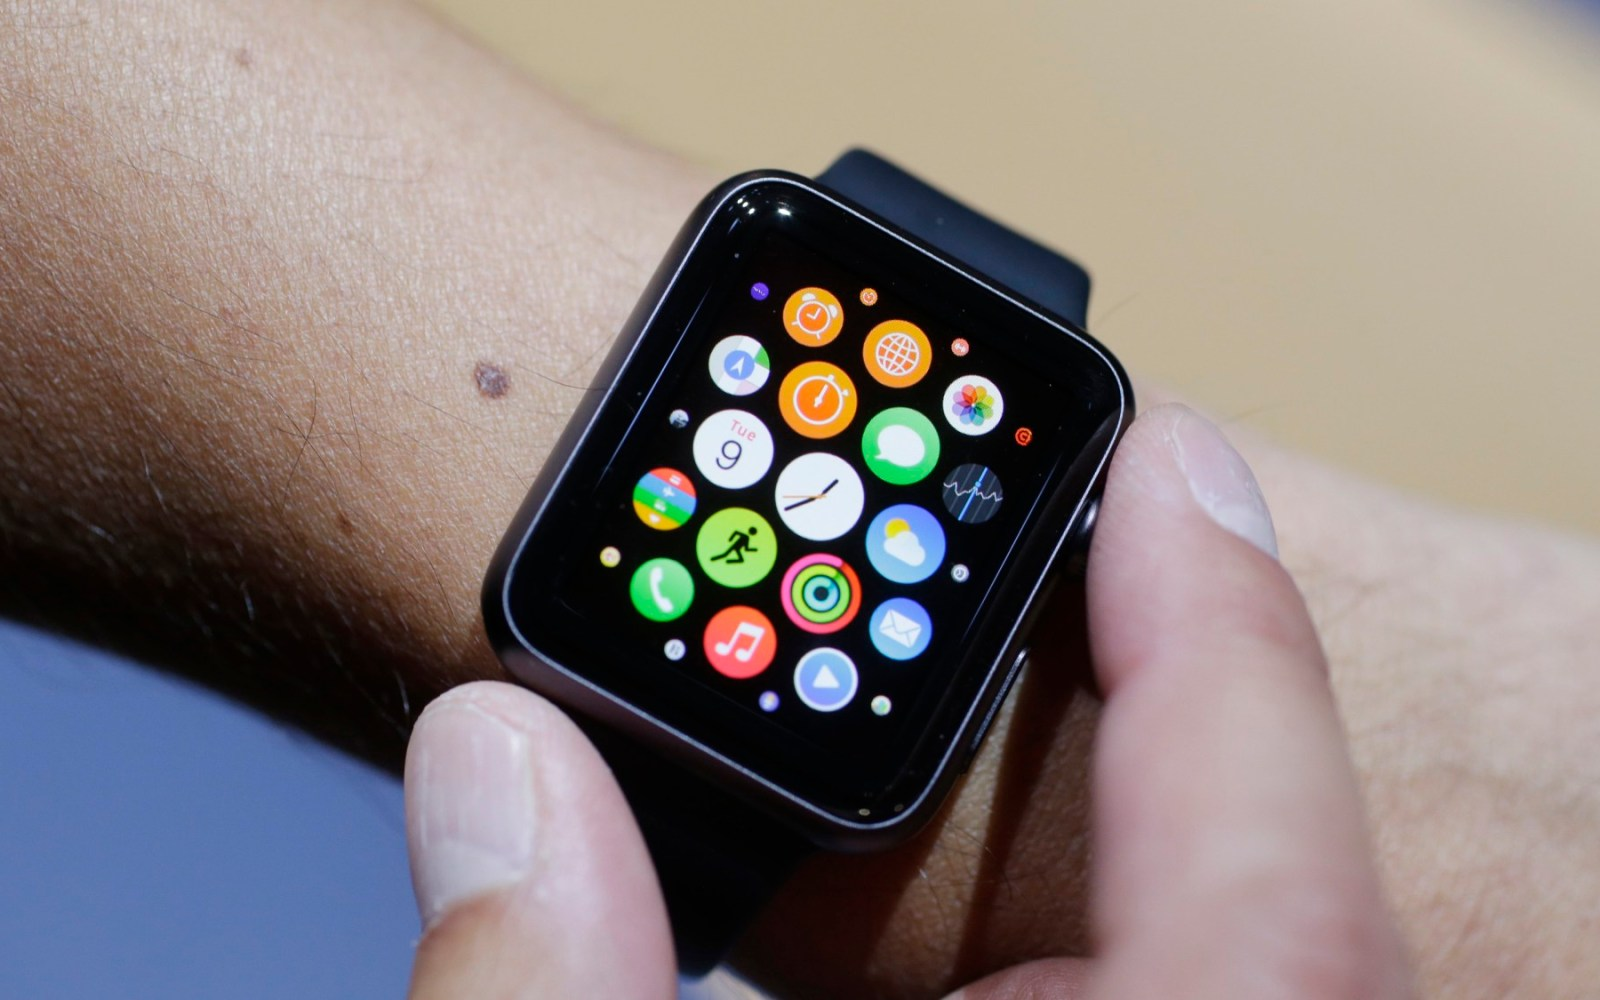 Sources offer hands-on Apple Watch details: battery life, unannounced features, and more